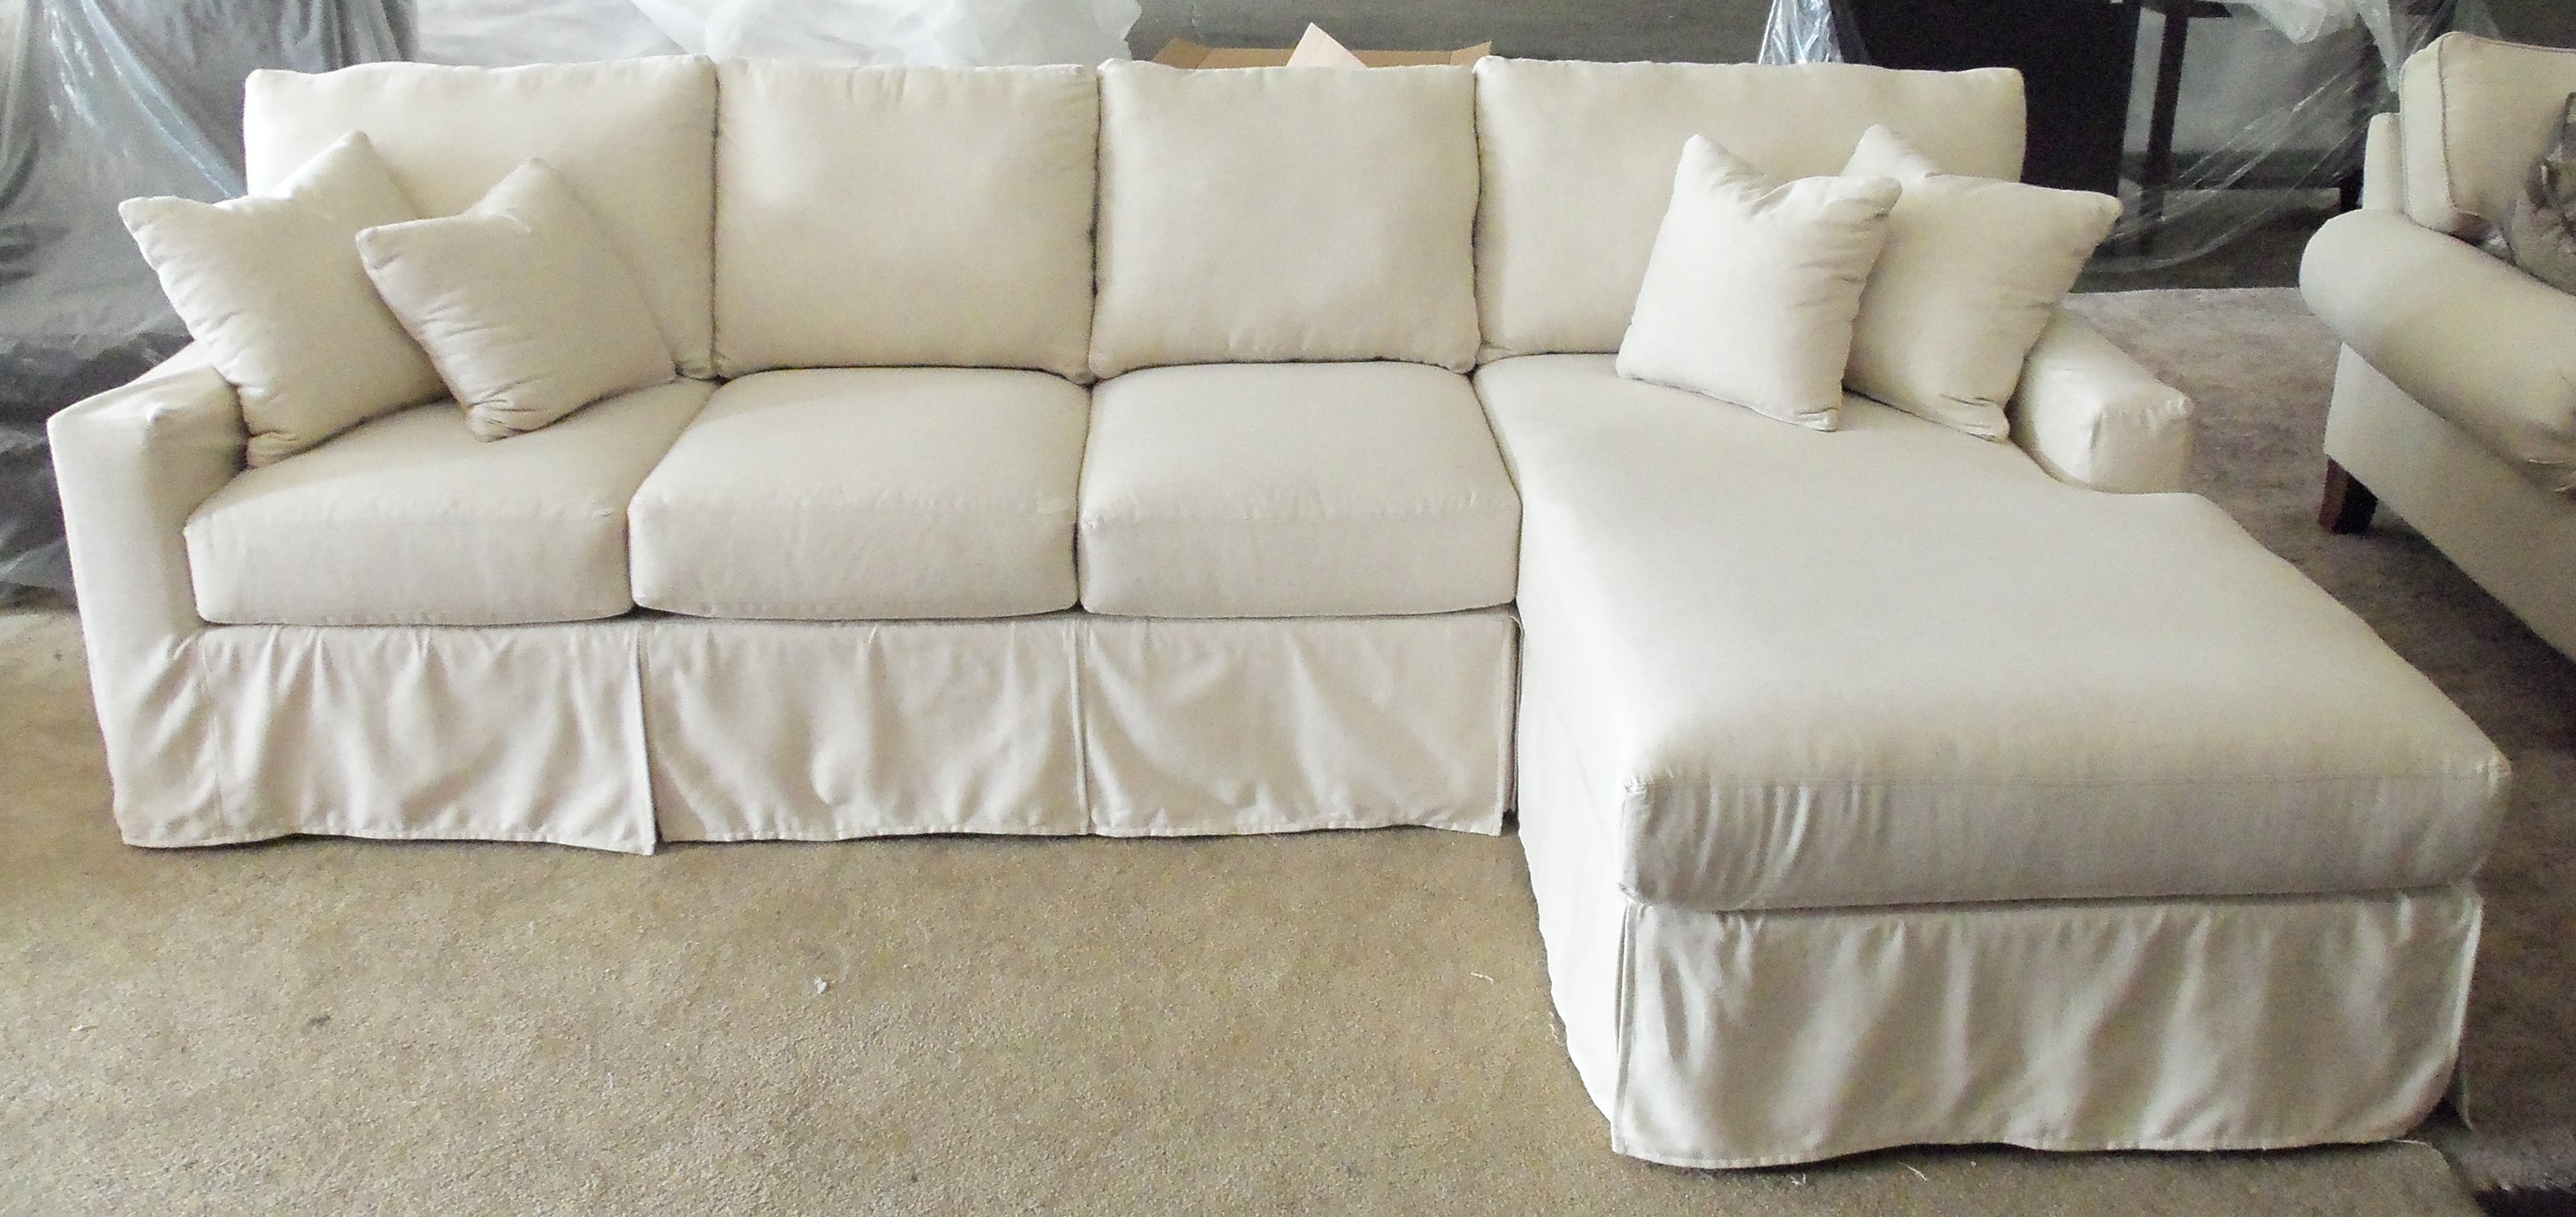 Round Sectional Sofa Slipcover | Catosfera with Sectional Sofas With Covers (Image 8 of 15)